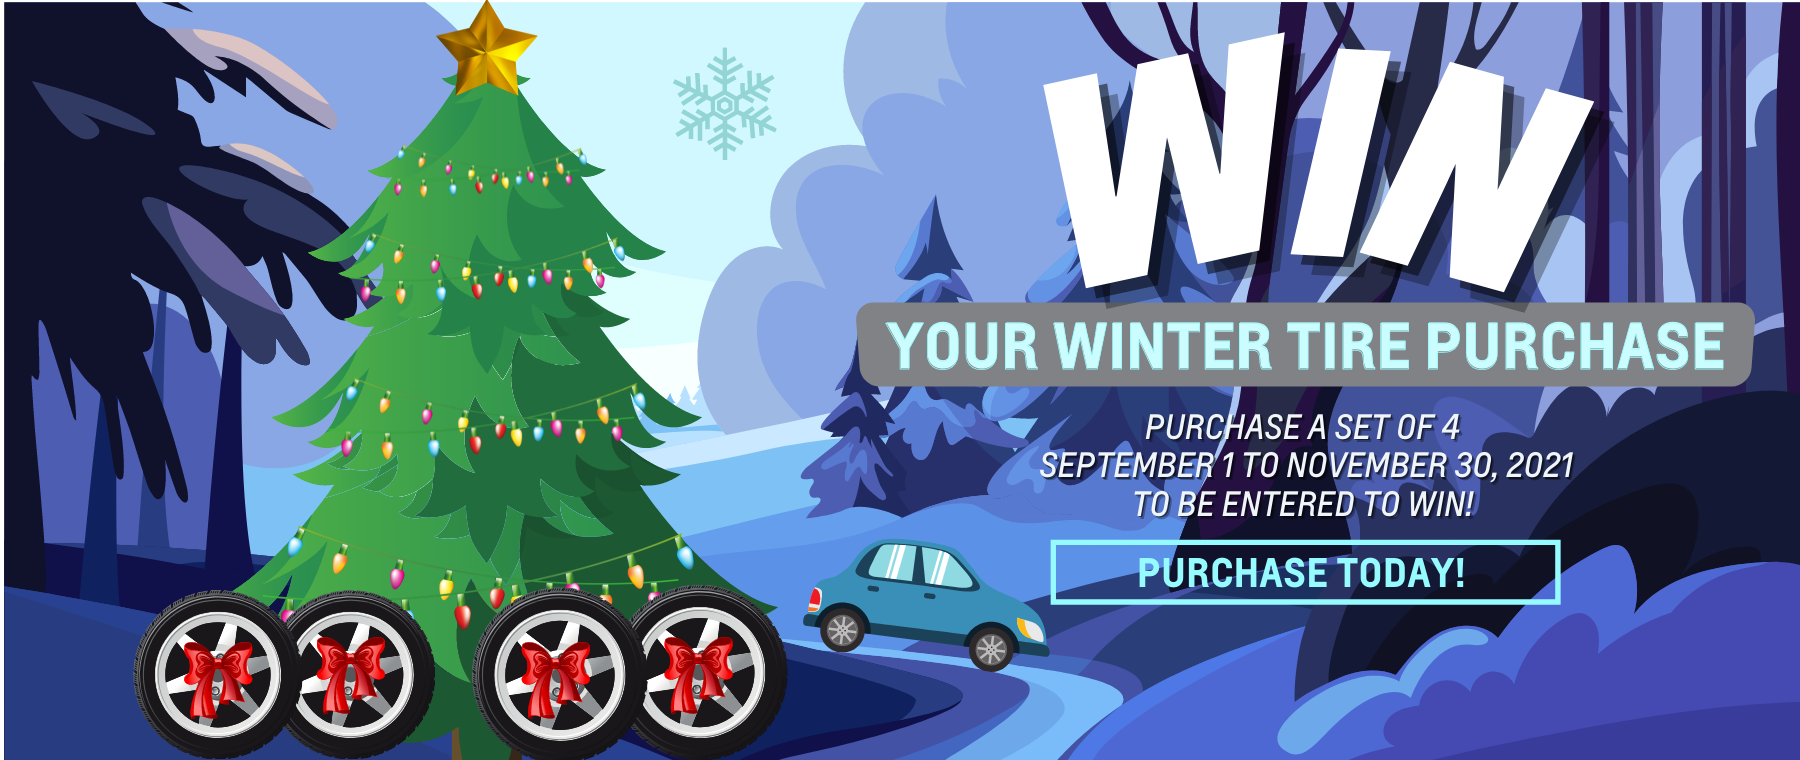 Win Your Winter Tire Purchase – SPC (4)